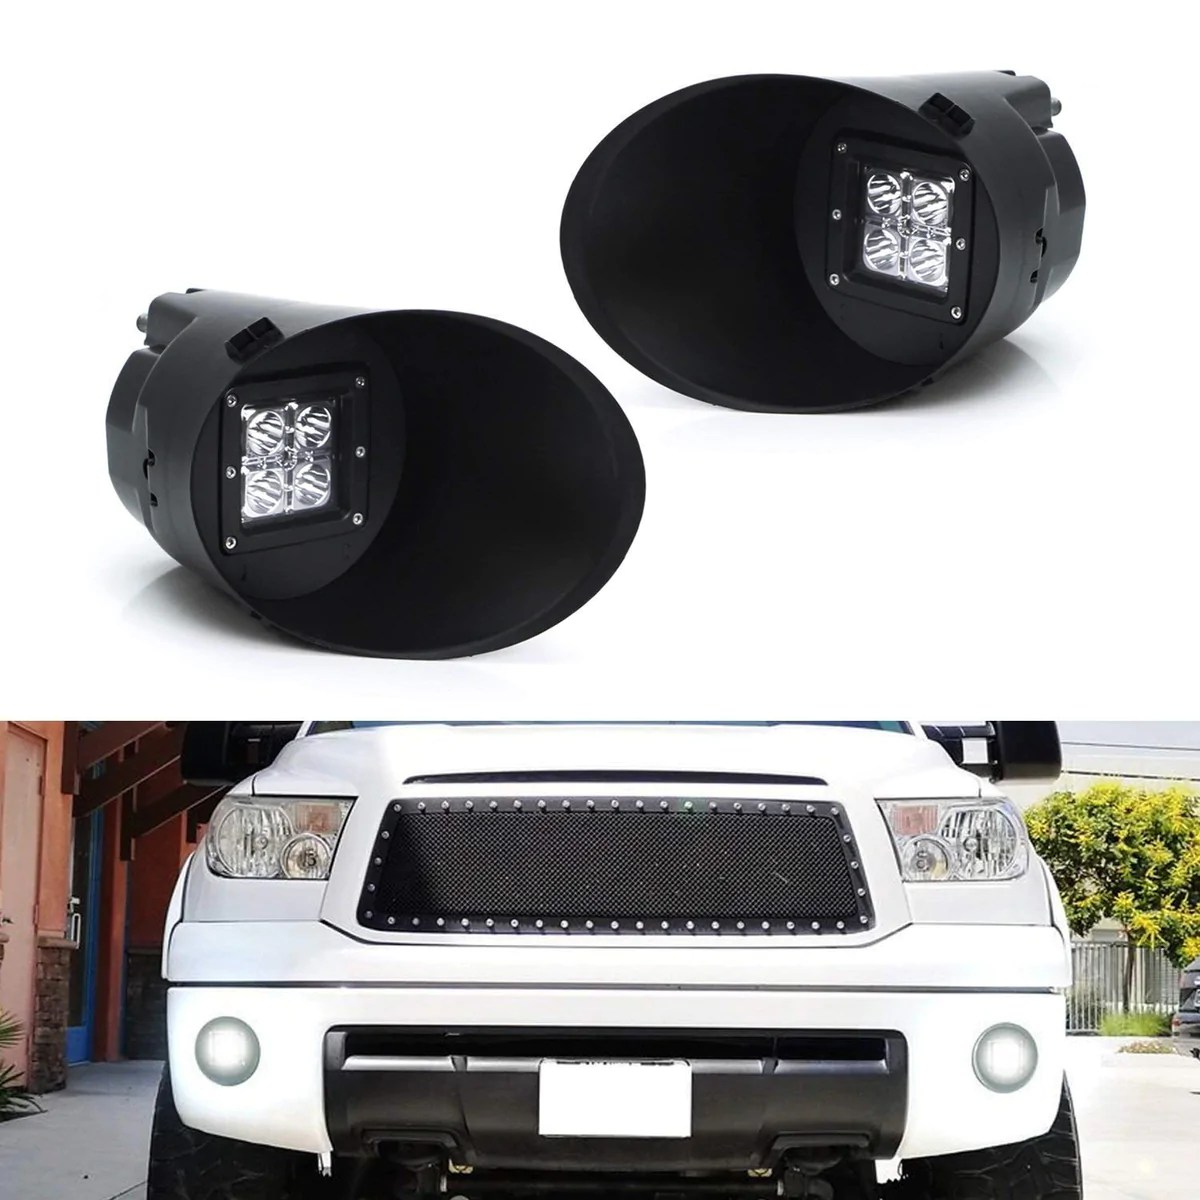 led pod light fog lamp kit for 2007 13 toyota tundra includes 2 20w high power cree led cubes foglight bezel covers fog location mounting brackets  [ 1200 x 1200 Pixel ]